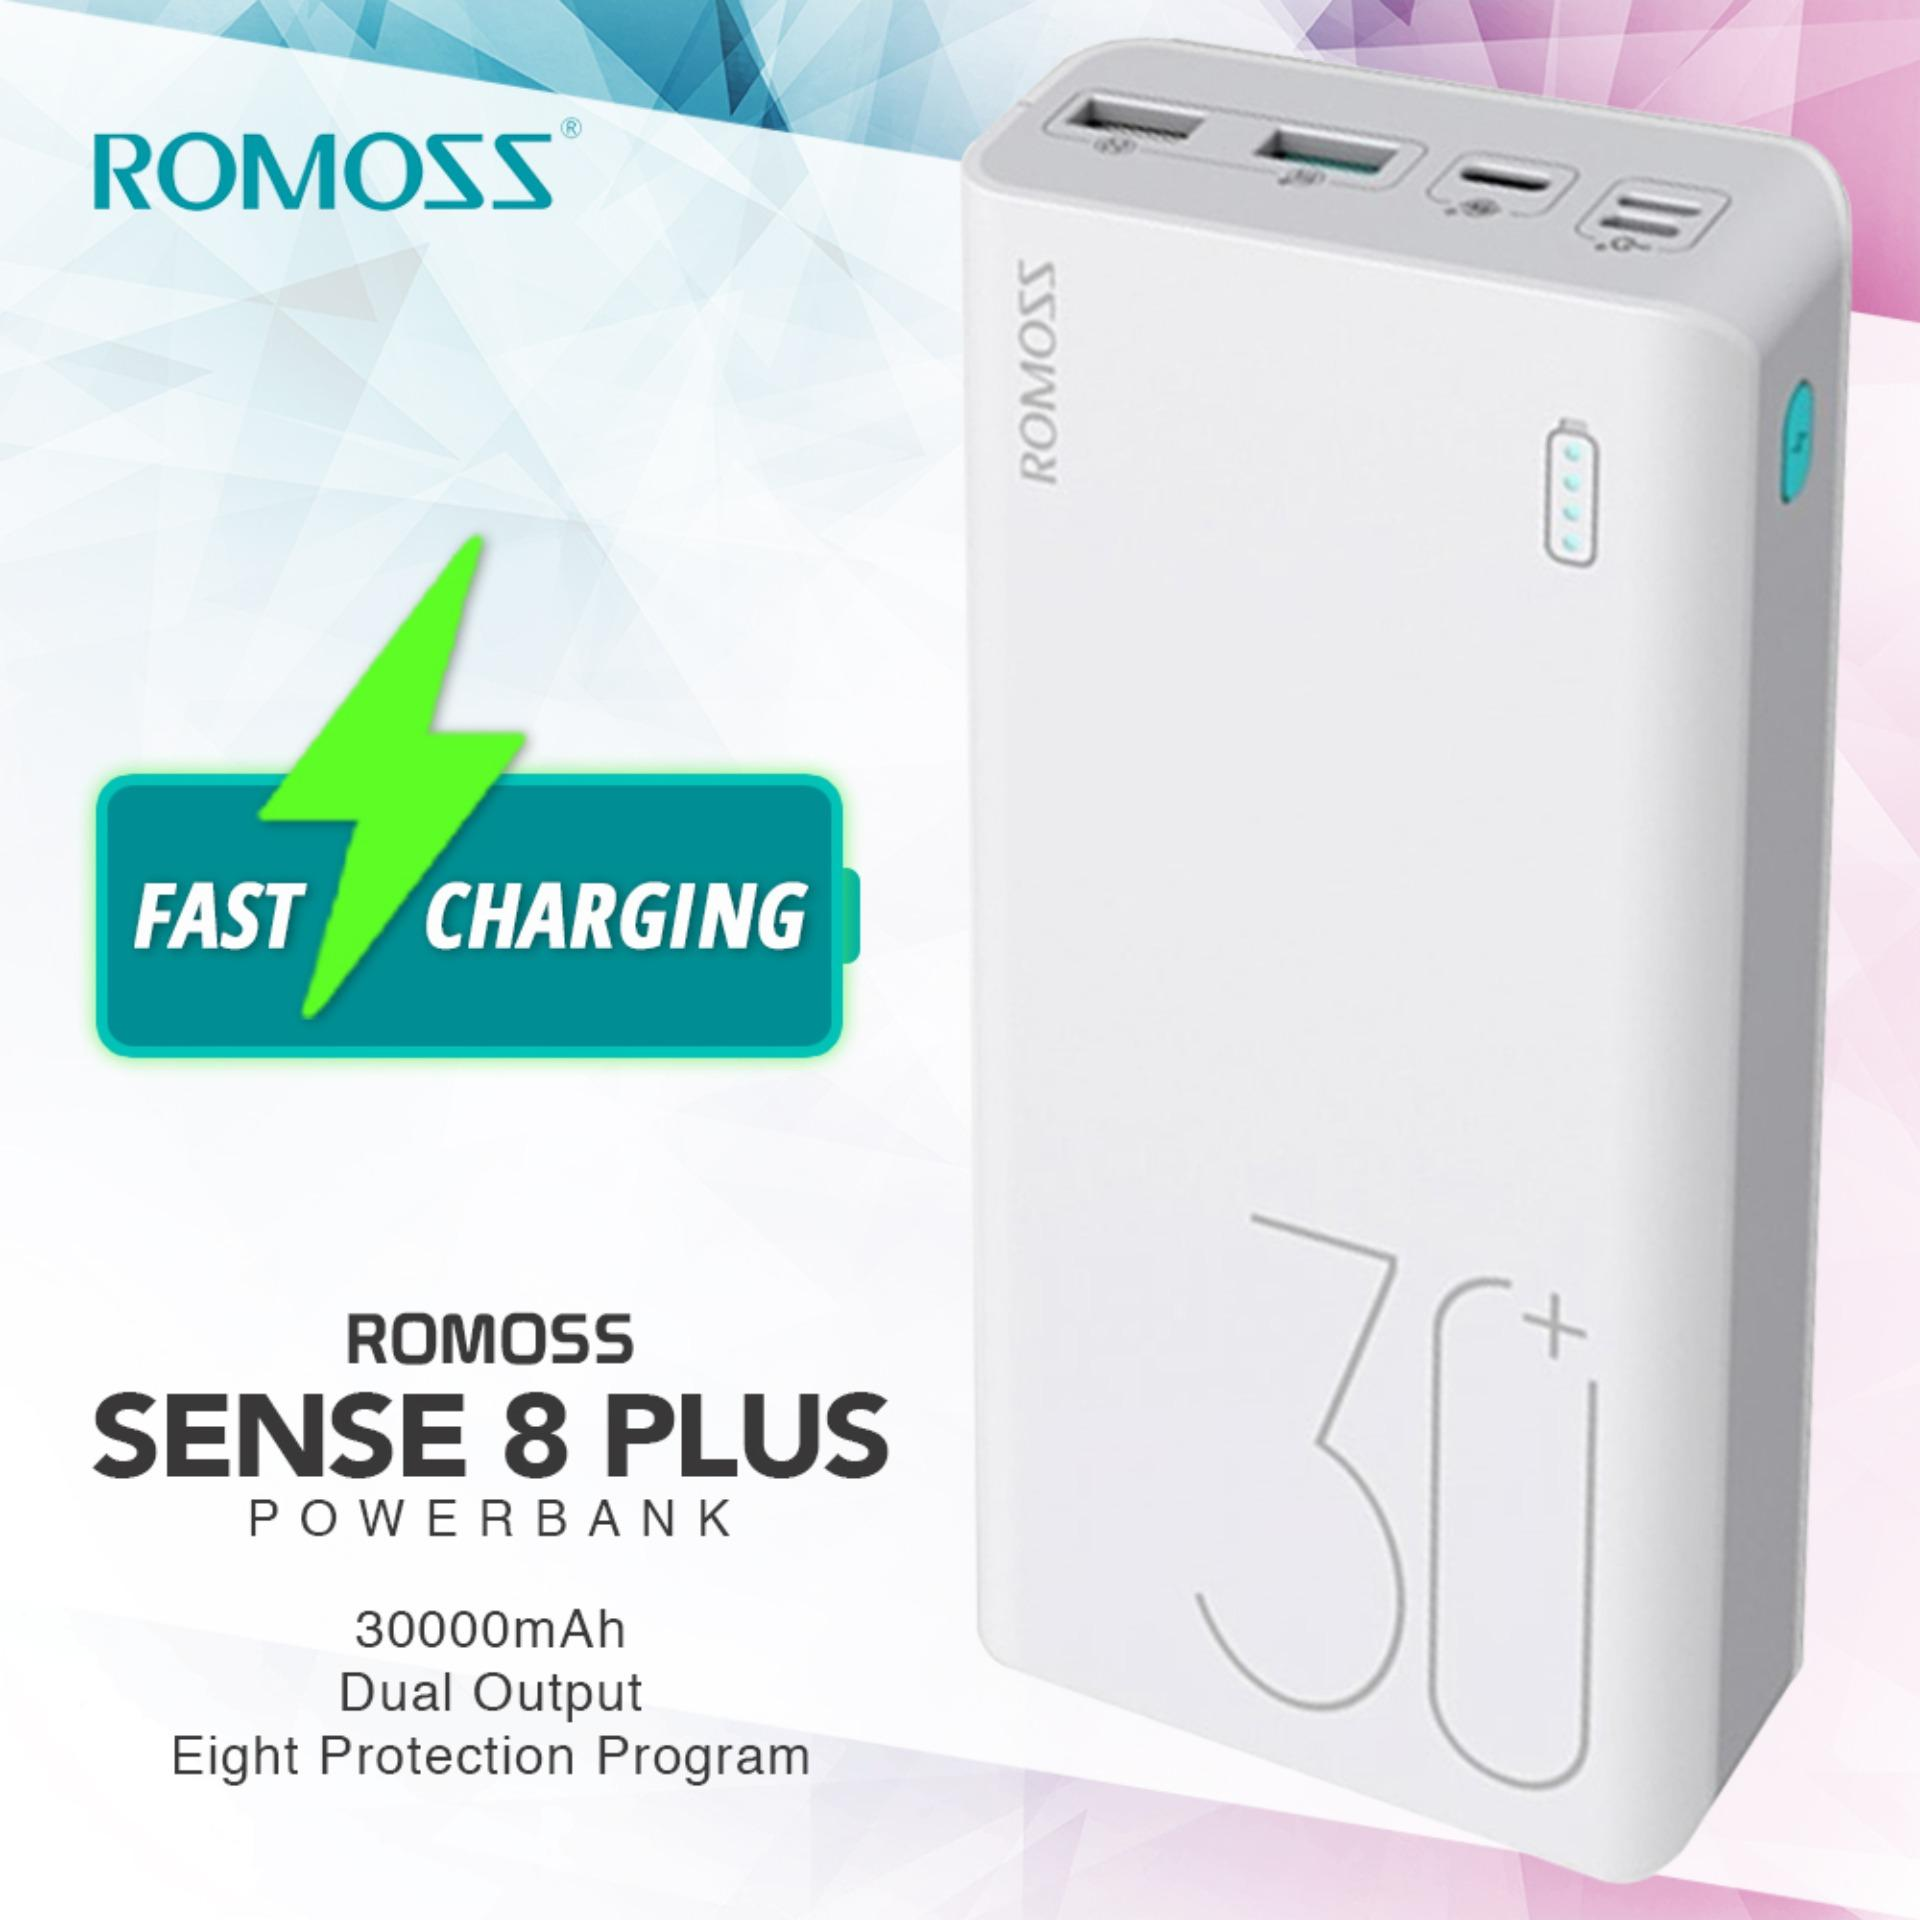 Diy Power Bank Ac Romoss Sense 8 Plus Fast Charging 30000 Mah Qc3 Type C Powerbank White